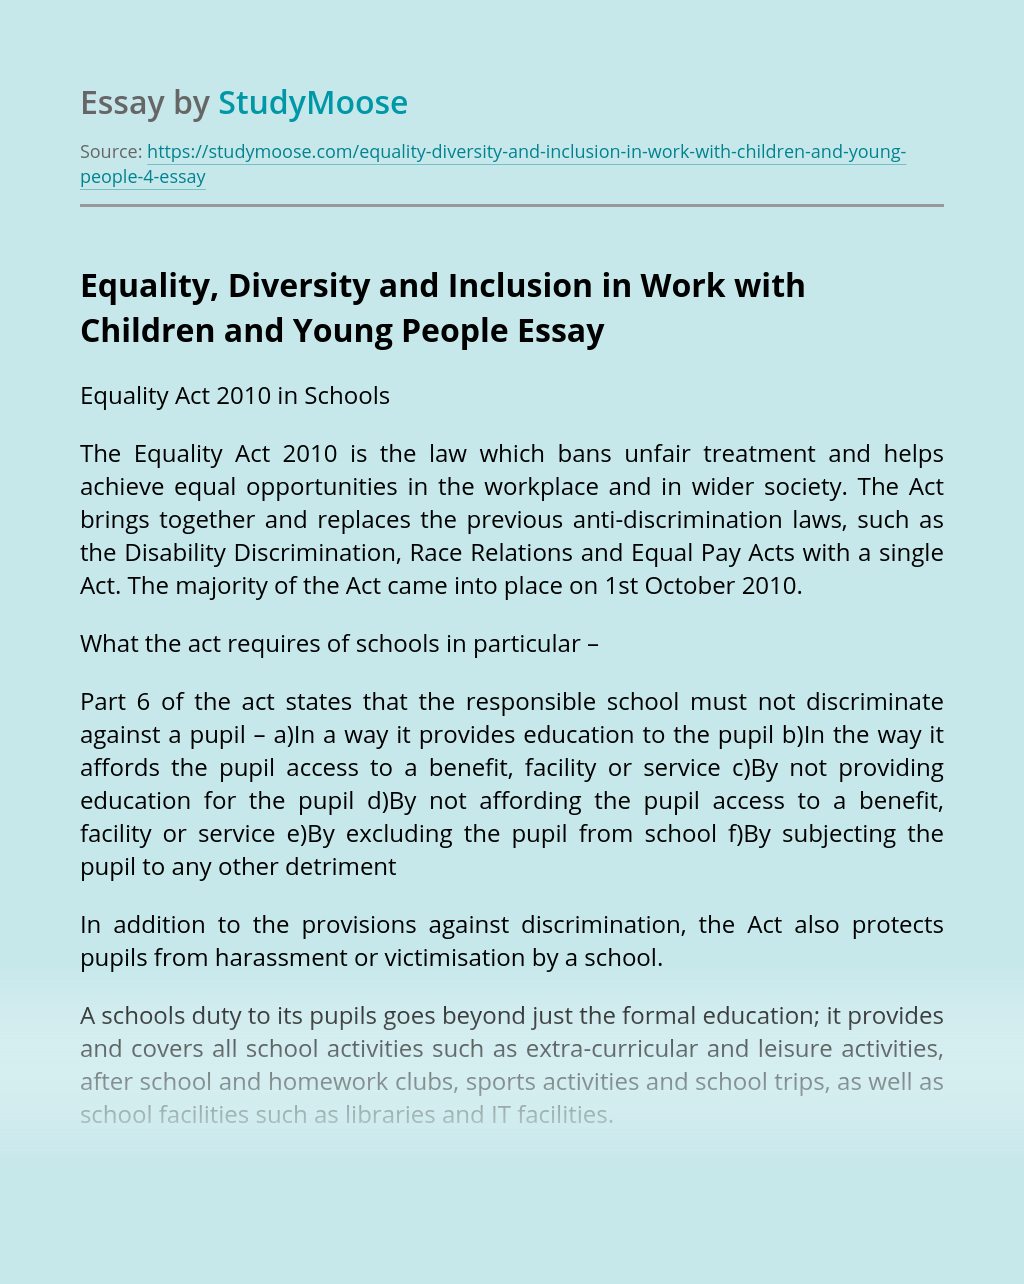 Equality, Diversity and Inclusion in Work with Children and Young People